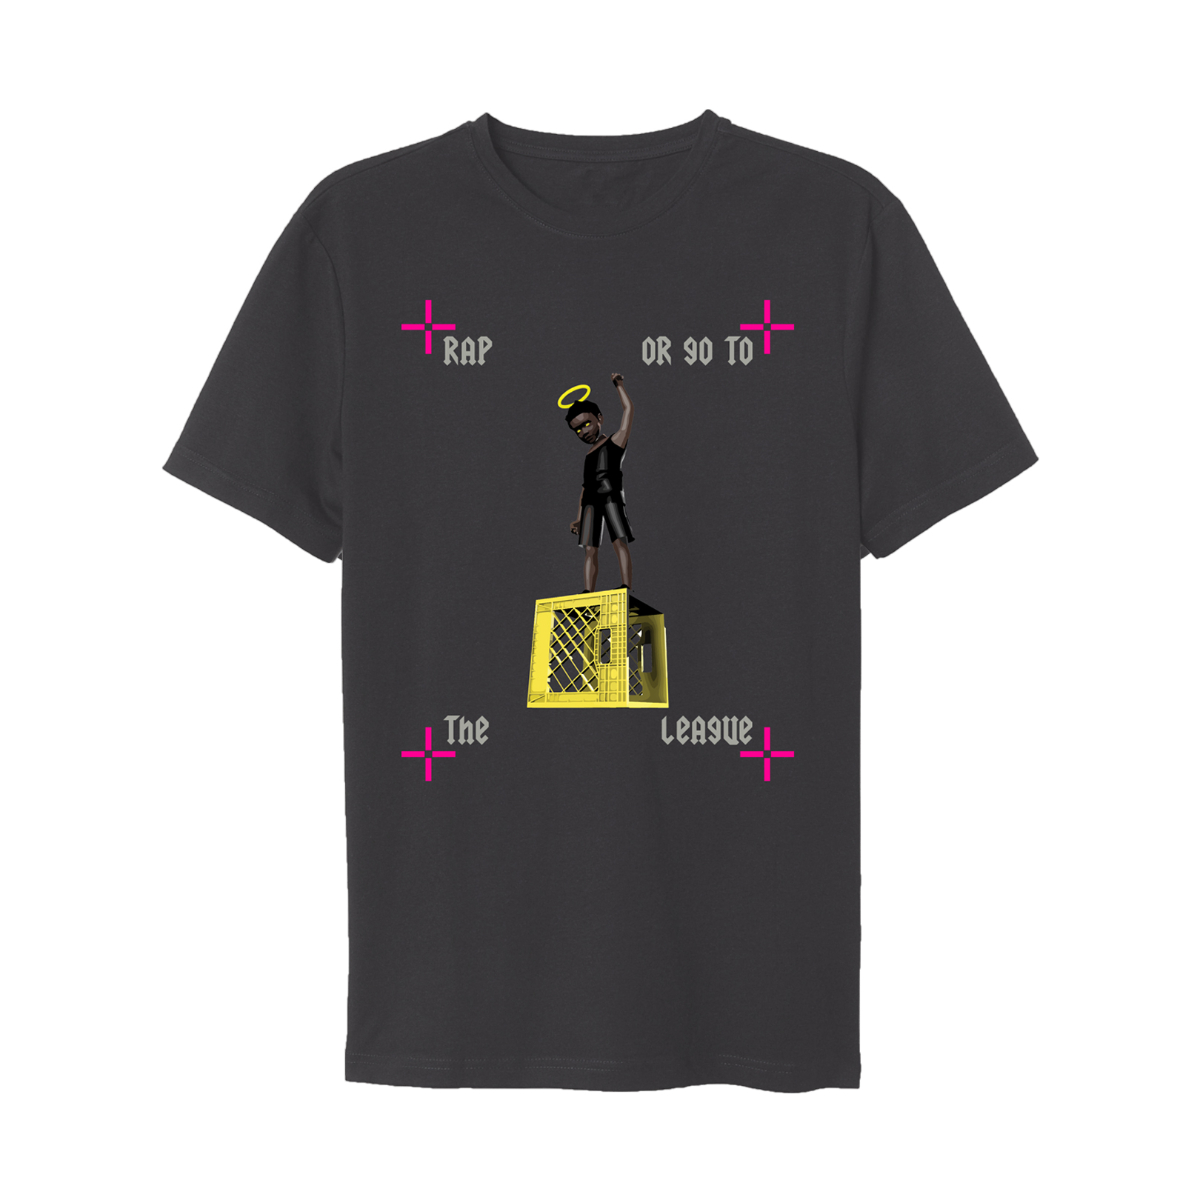 Halo Tee + Download